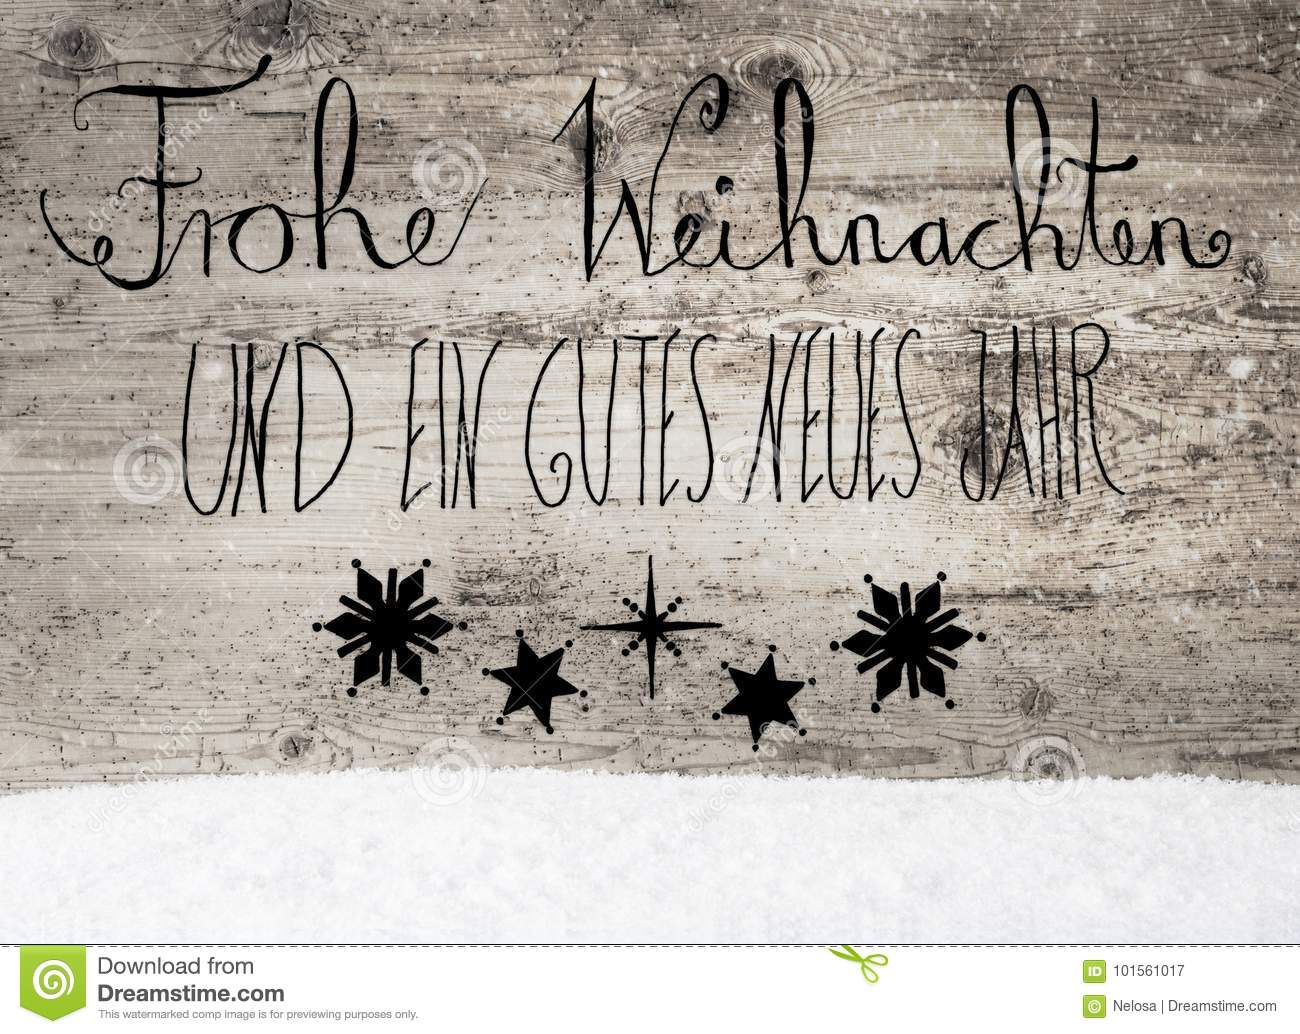 Frohe Weihnachten Und Happy New Year.Black Calligraphy Gutes Neues Means Happy New Year Snow Stock Image